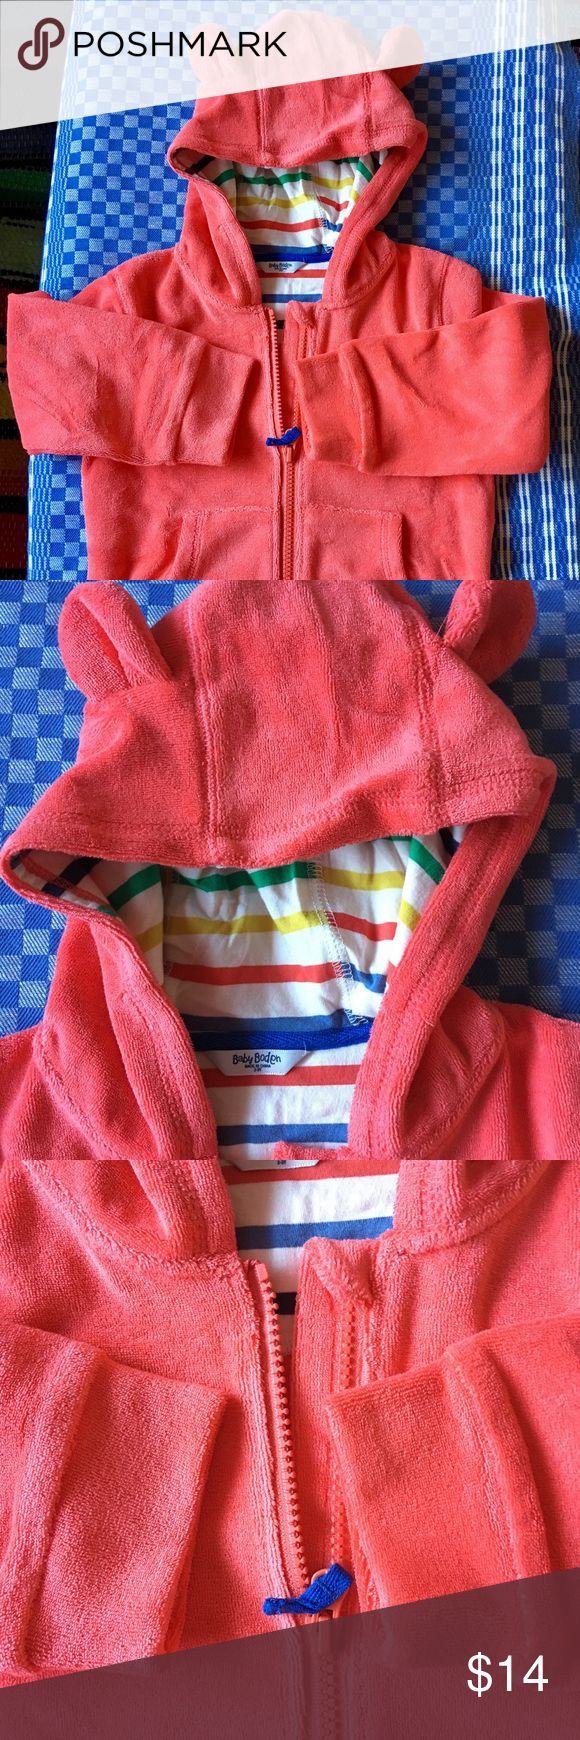 """MINI BODEN TOWELING HOODIE, COTTON, LINED/NWT, 2-3 This is a beautiful, coral toweling hoodie with two perky ears, in a lovely coral. Striped cotton lining. Hoodie is 87% cotton, 13% poly for stretch. Brand new; removed from shipping bag to photograph. Shipping tag on bag; that's all there was for a """"tag."""" I thought it was going to be bright red; the gift recipient did not care to have this color on a boy, though the hoodie is unisex! GREAT HOLIDAY GIFT ITEM! Boden Shirts & Tops Sweatshirts…"""